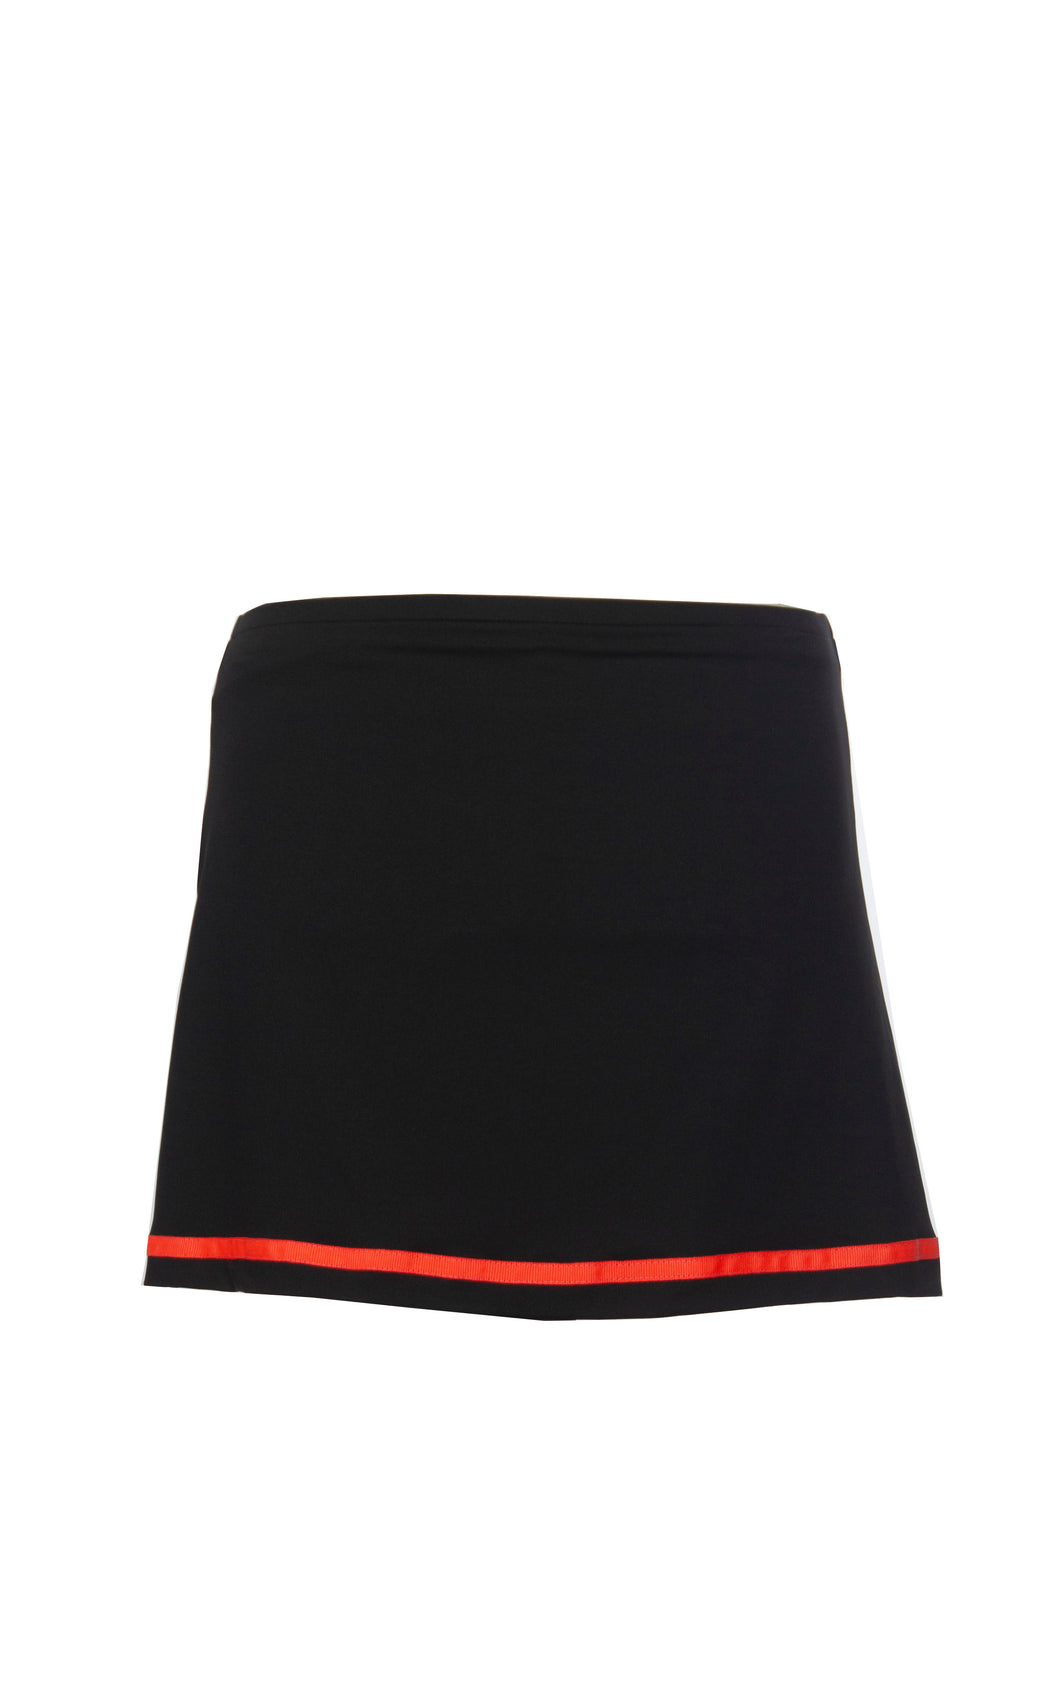 Black Skort With Neon Trim